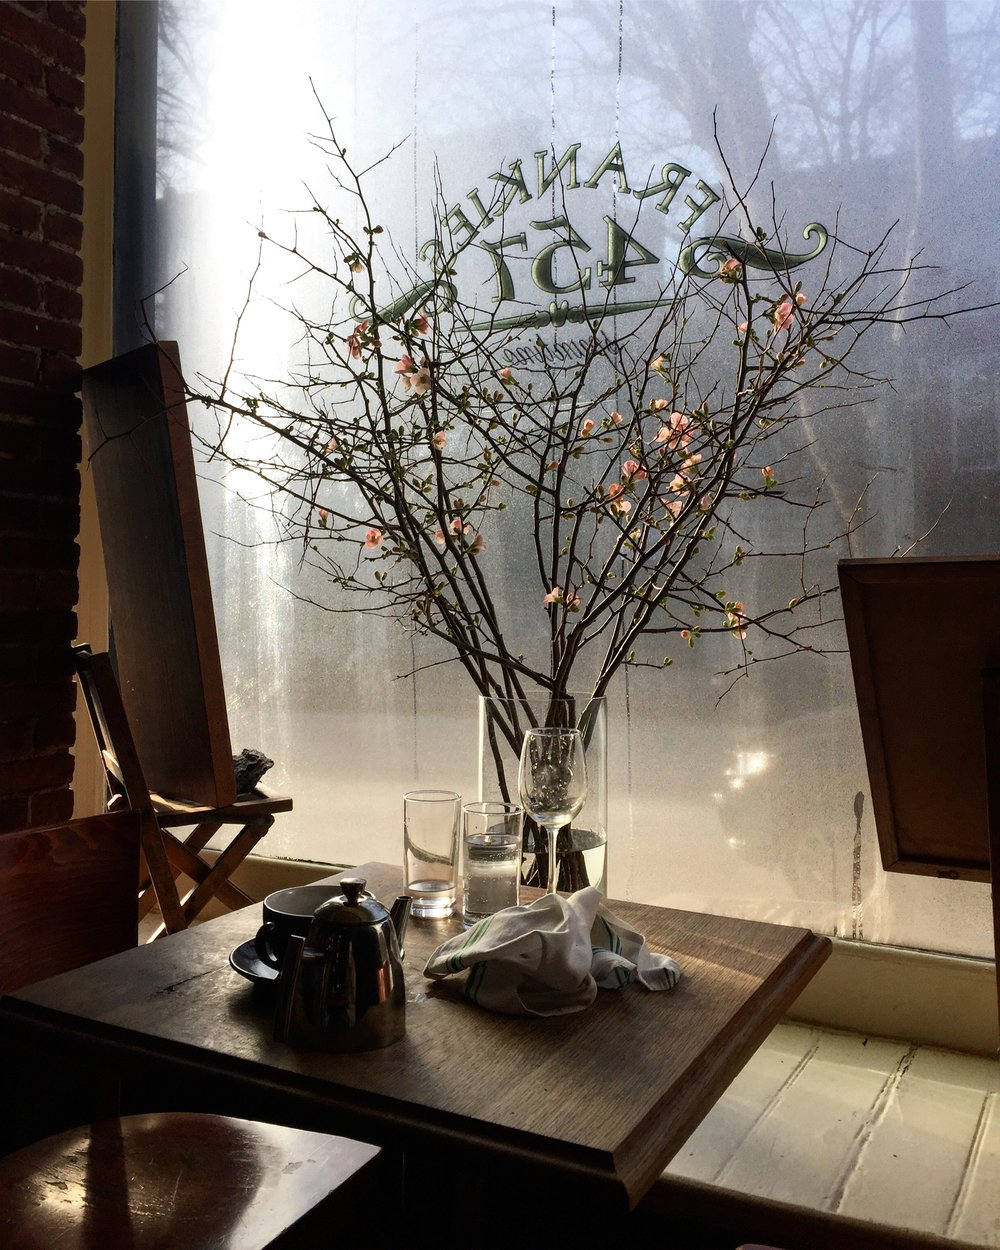 Steamy windows and blooming quince at  Frankie's 457